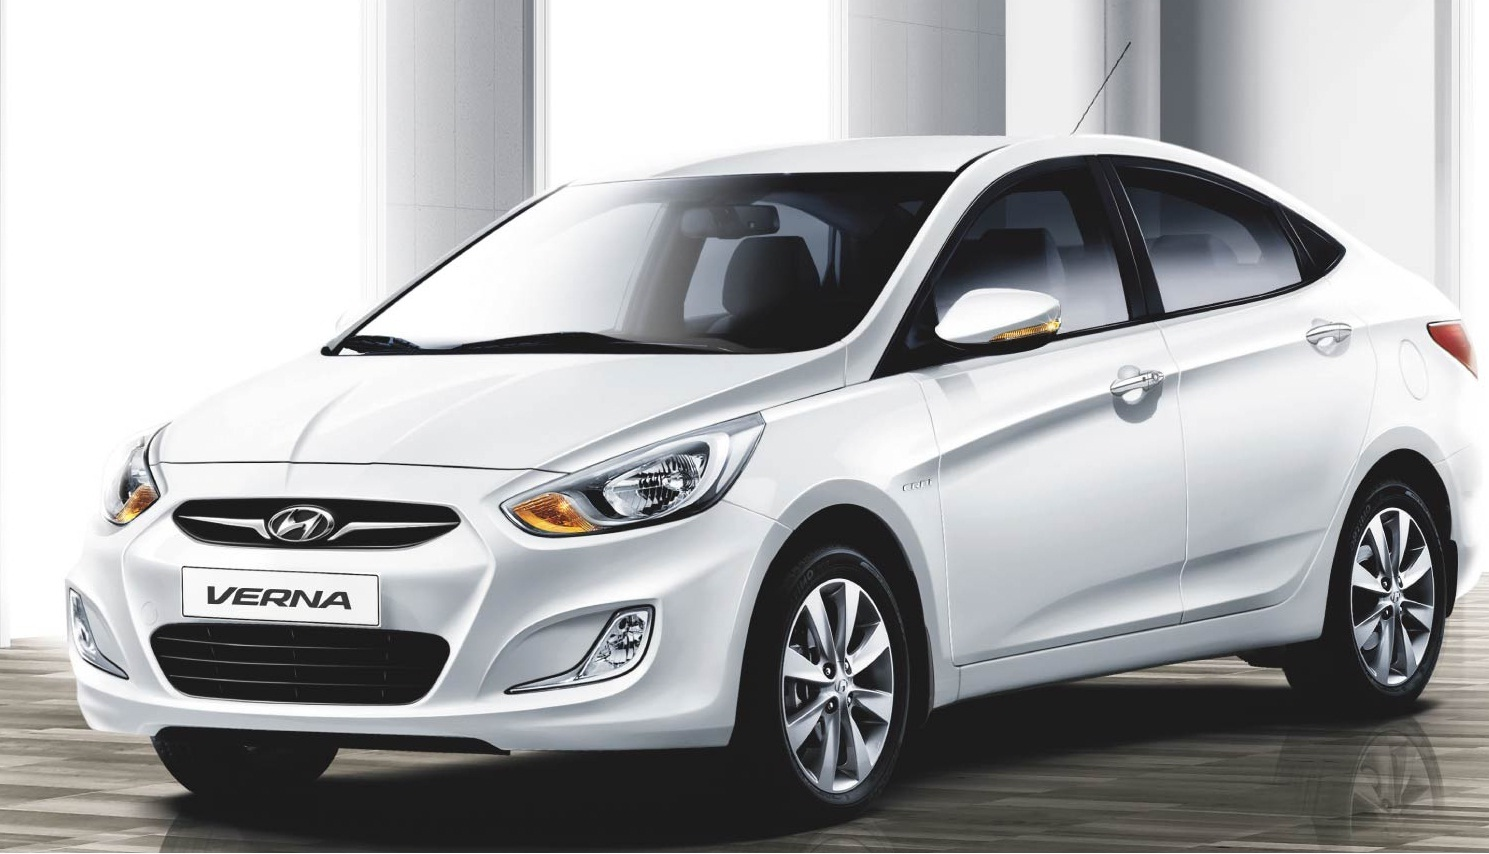 Hyundai Verna Fluidic 1.6 EX VTVT - PetrolPrice in India, Review, Pics, Specs and Mileage | Carzoom.in | Car Zoom